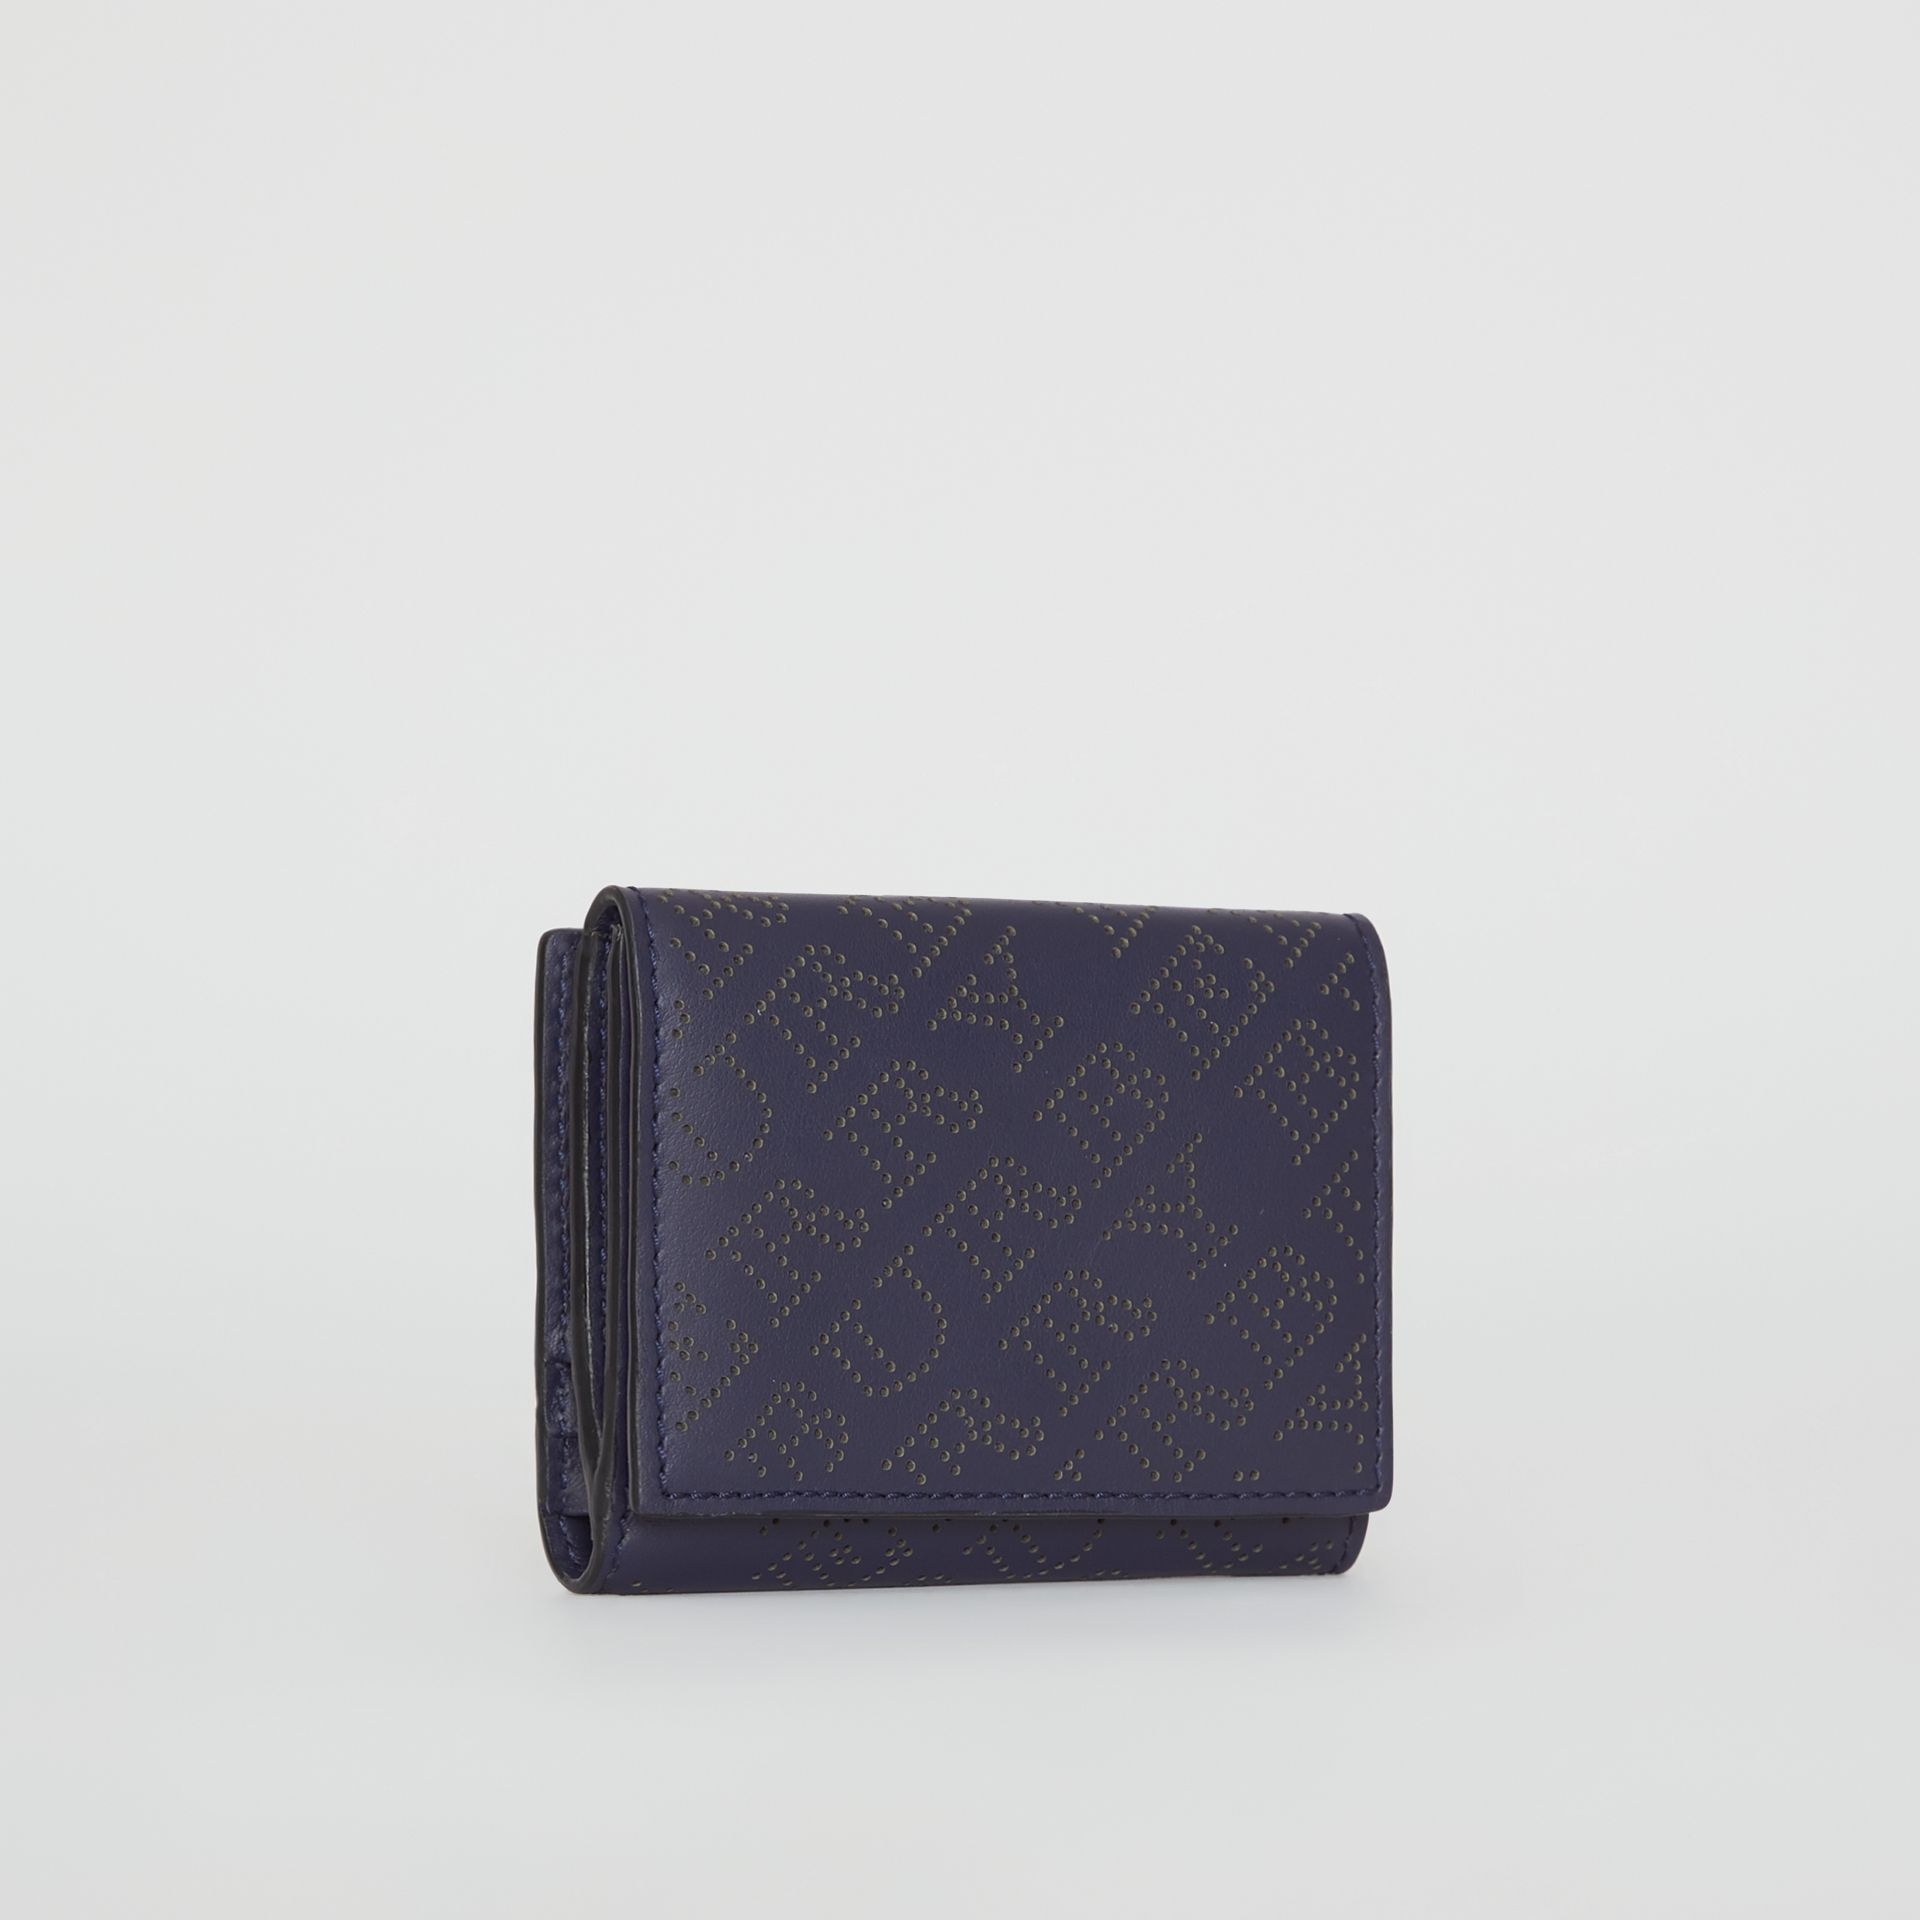 Small Perforated Logo Leather Wallet in Navy - Women | Burberry Canada - gallery image 4